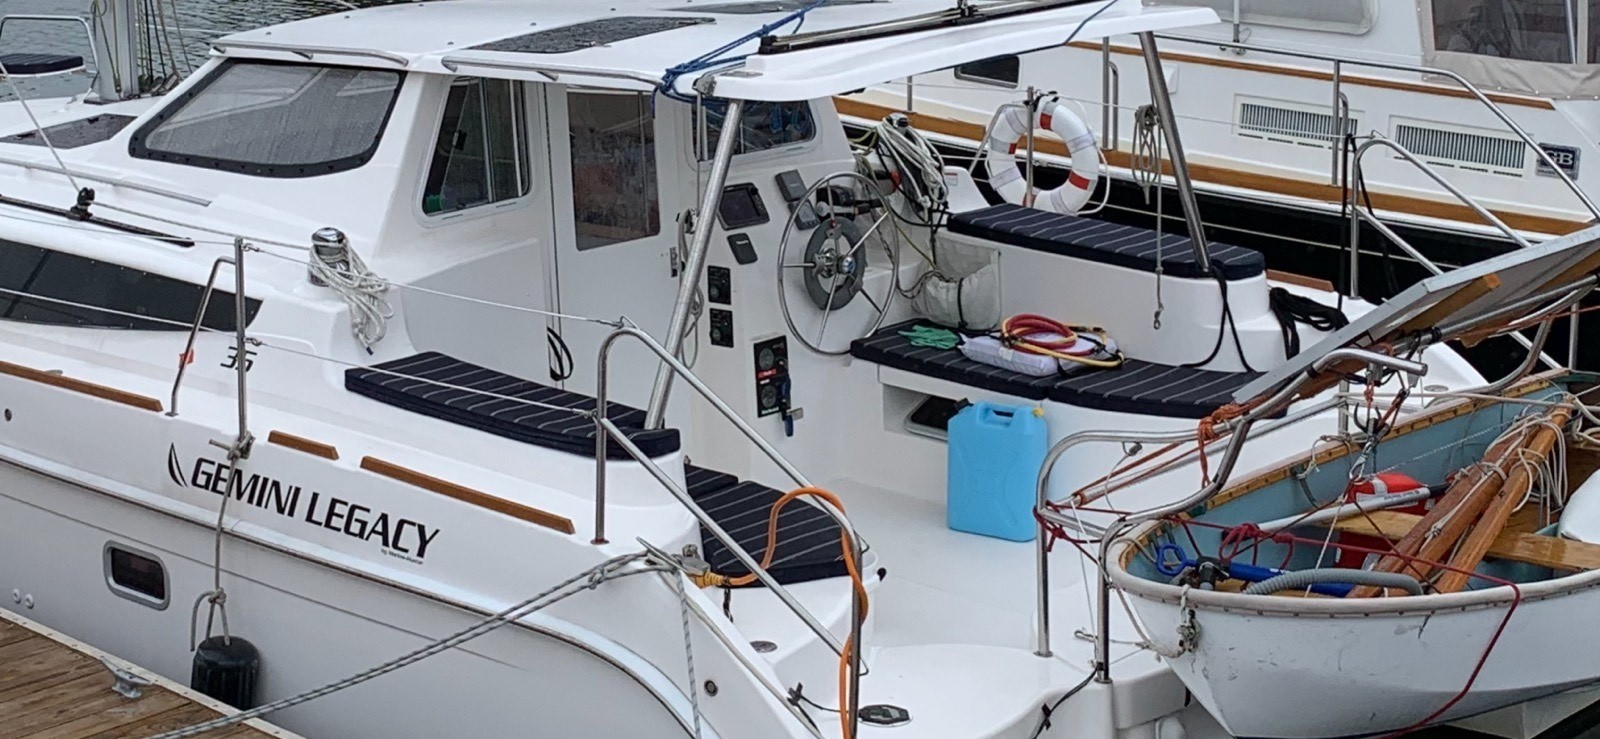 Used Sail Catamaran for Sale 2013 Legacy 35 Deck & Equipment